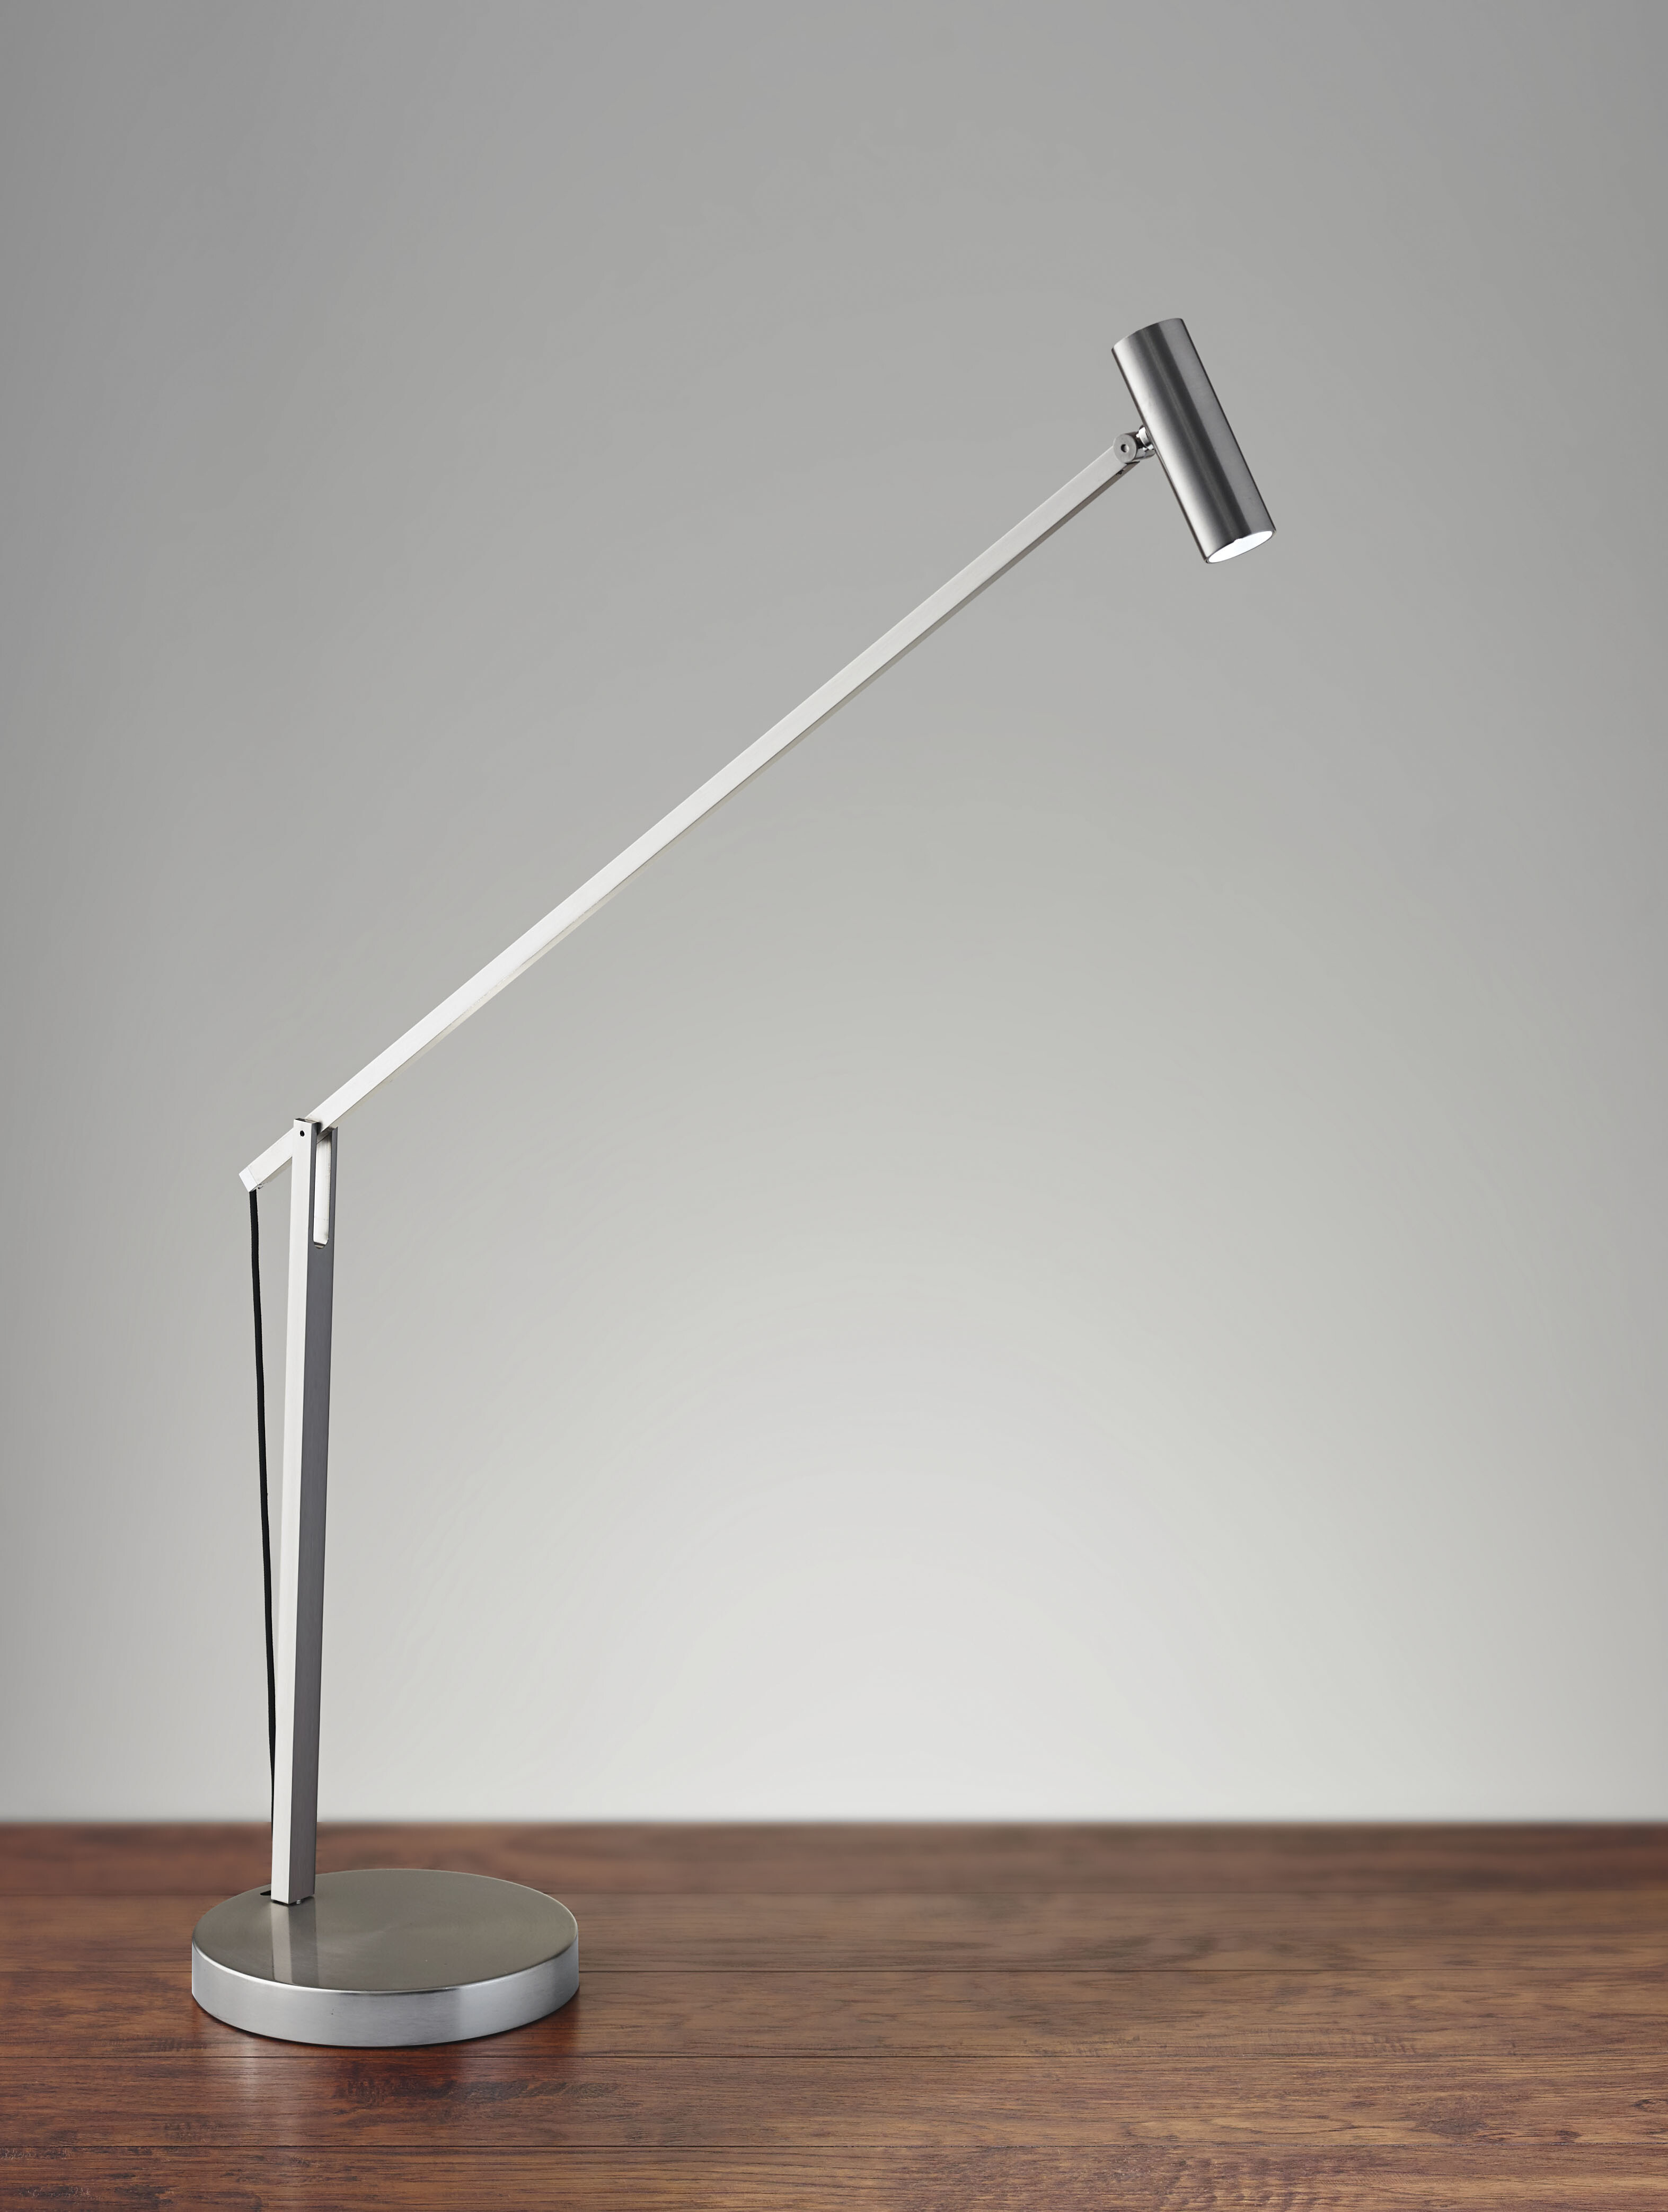 AD9100-22 Crane LED Desk Lamp